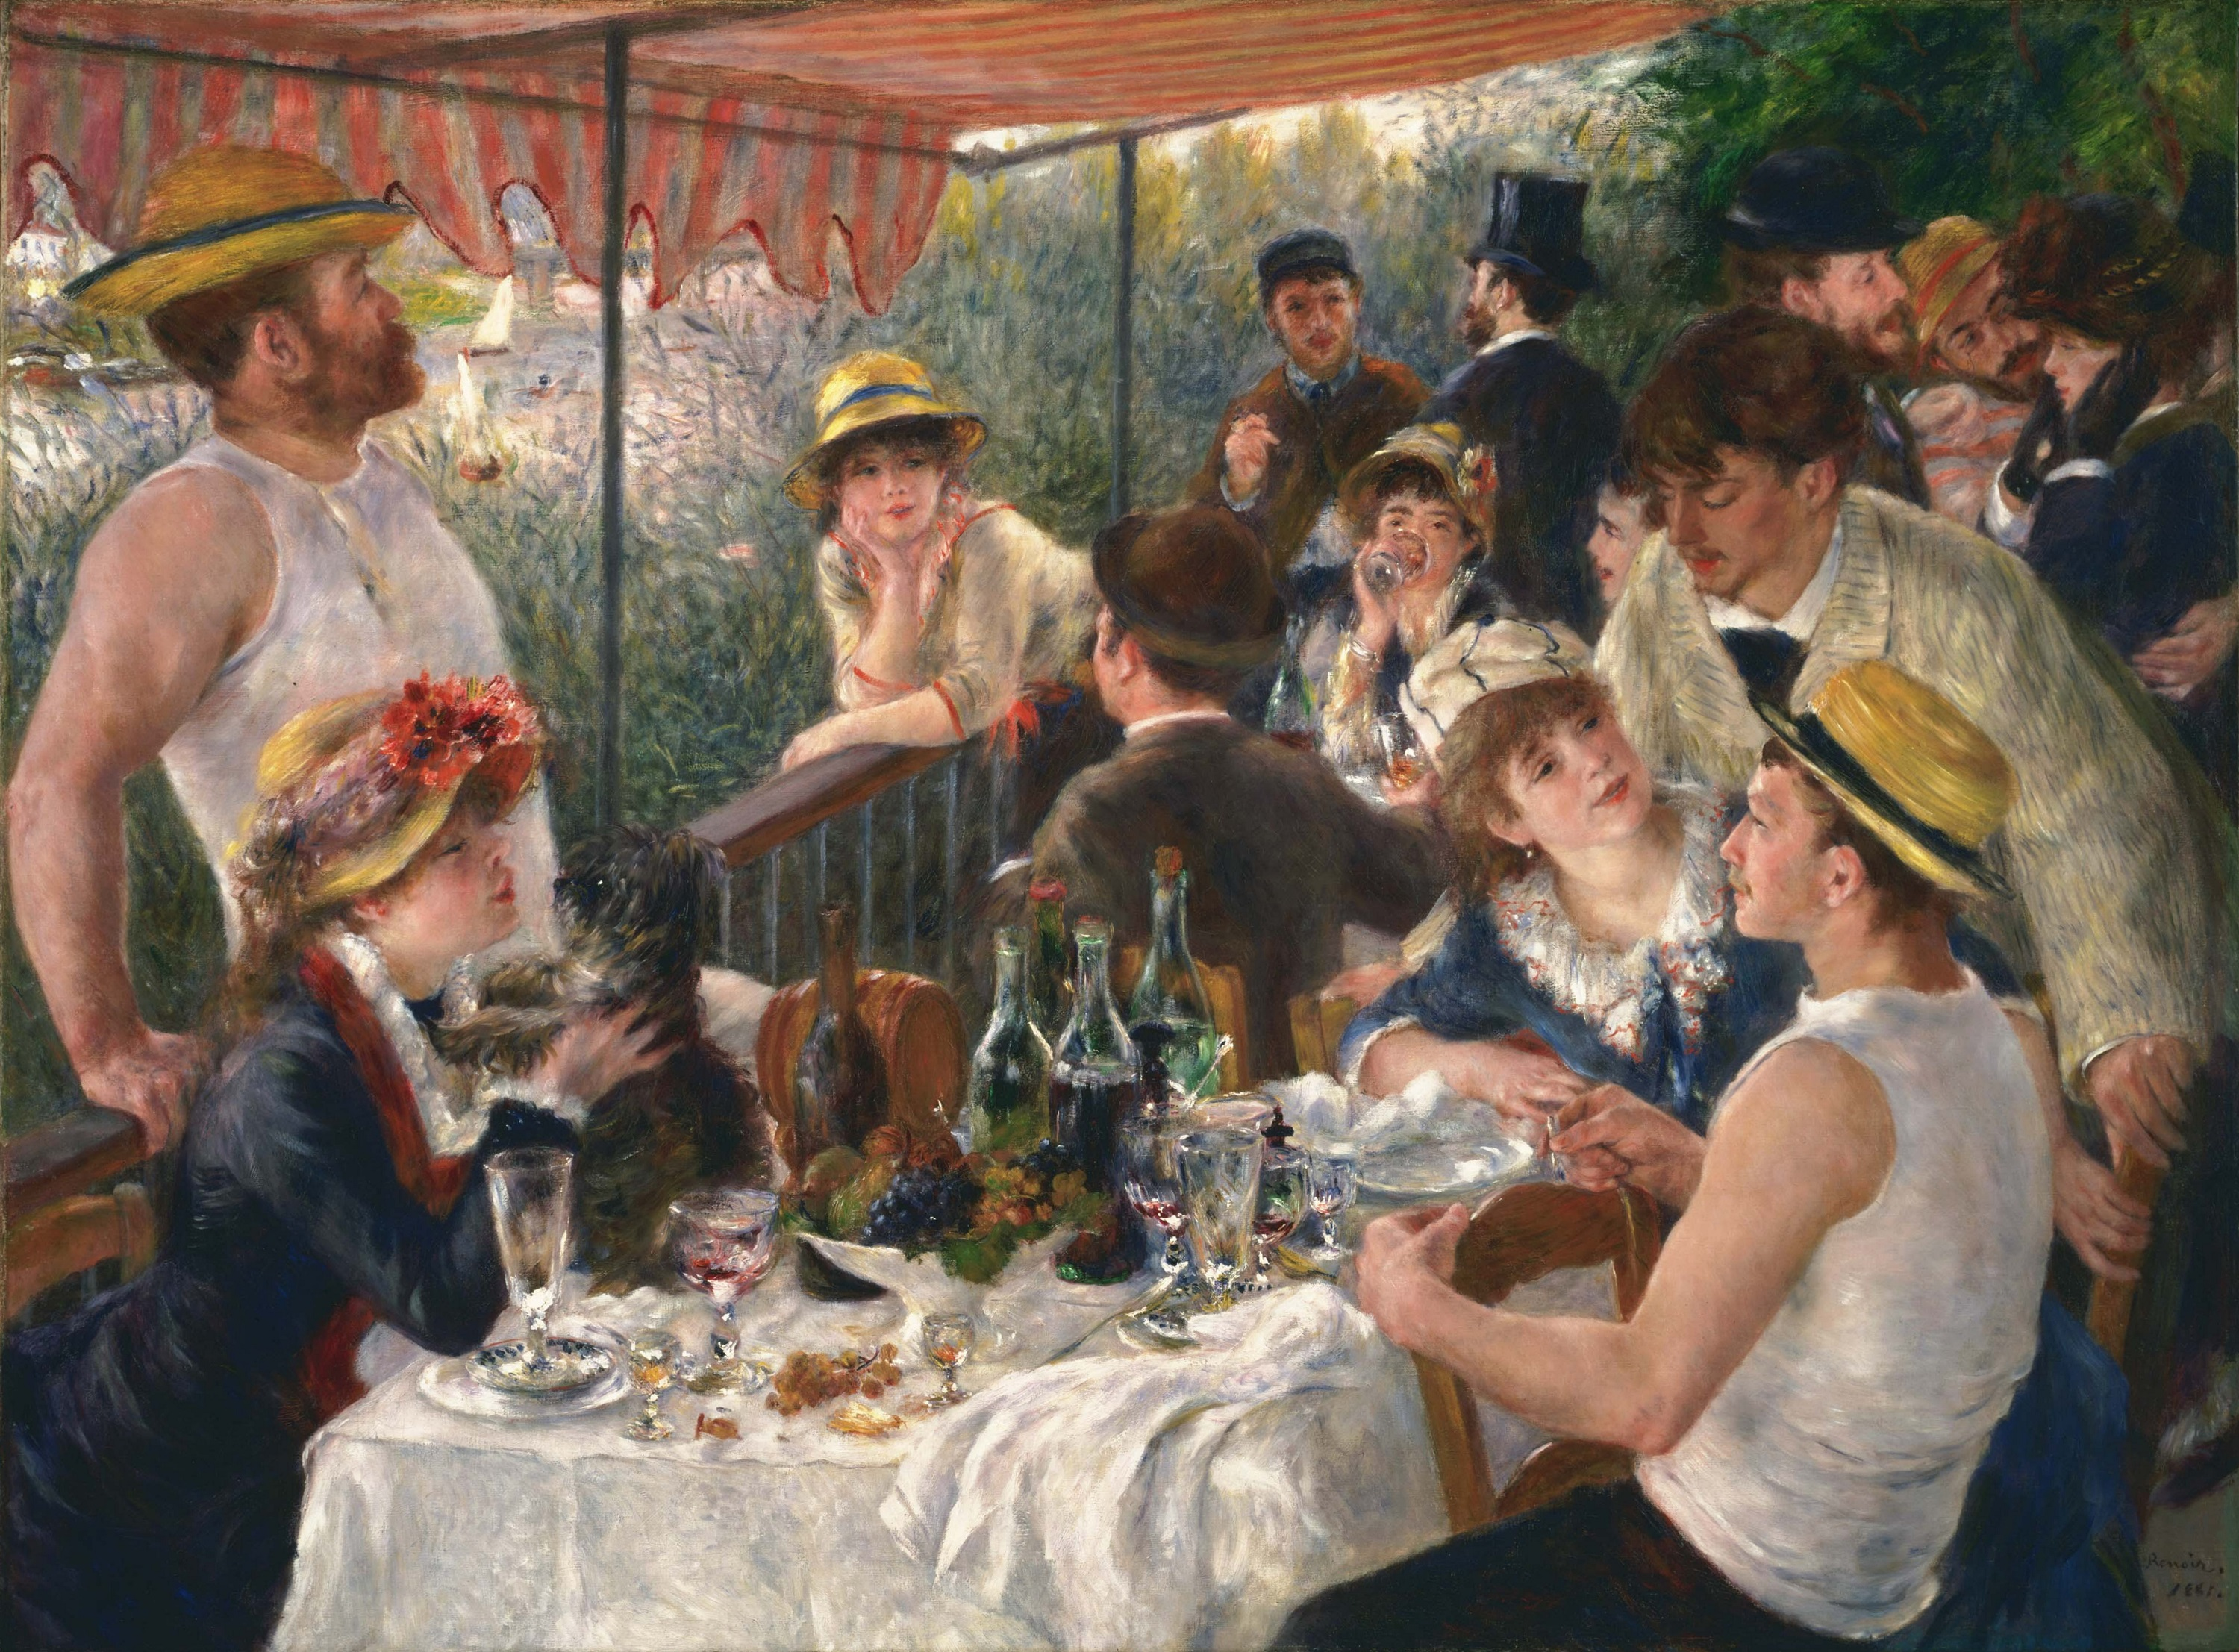 Pierre-Auguste Renoir, La colazione dei canottieri (1881); olio su tela, Phillips Collection, Washington